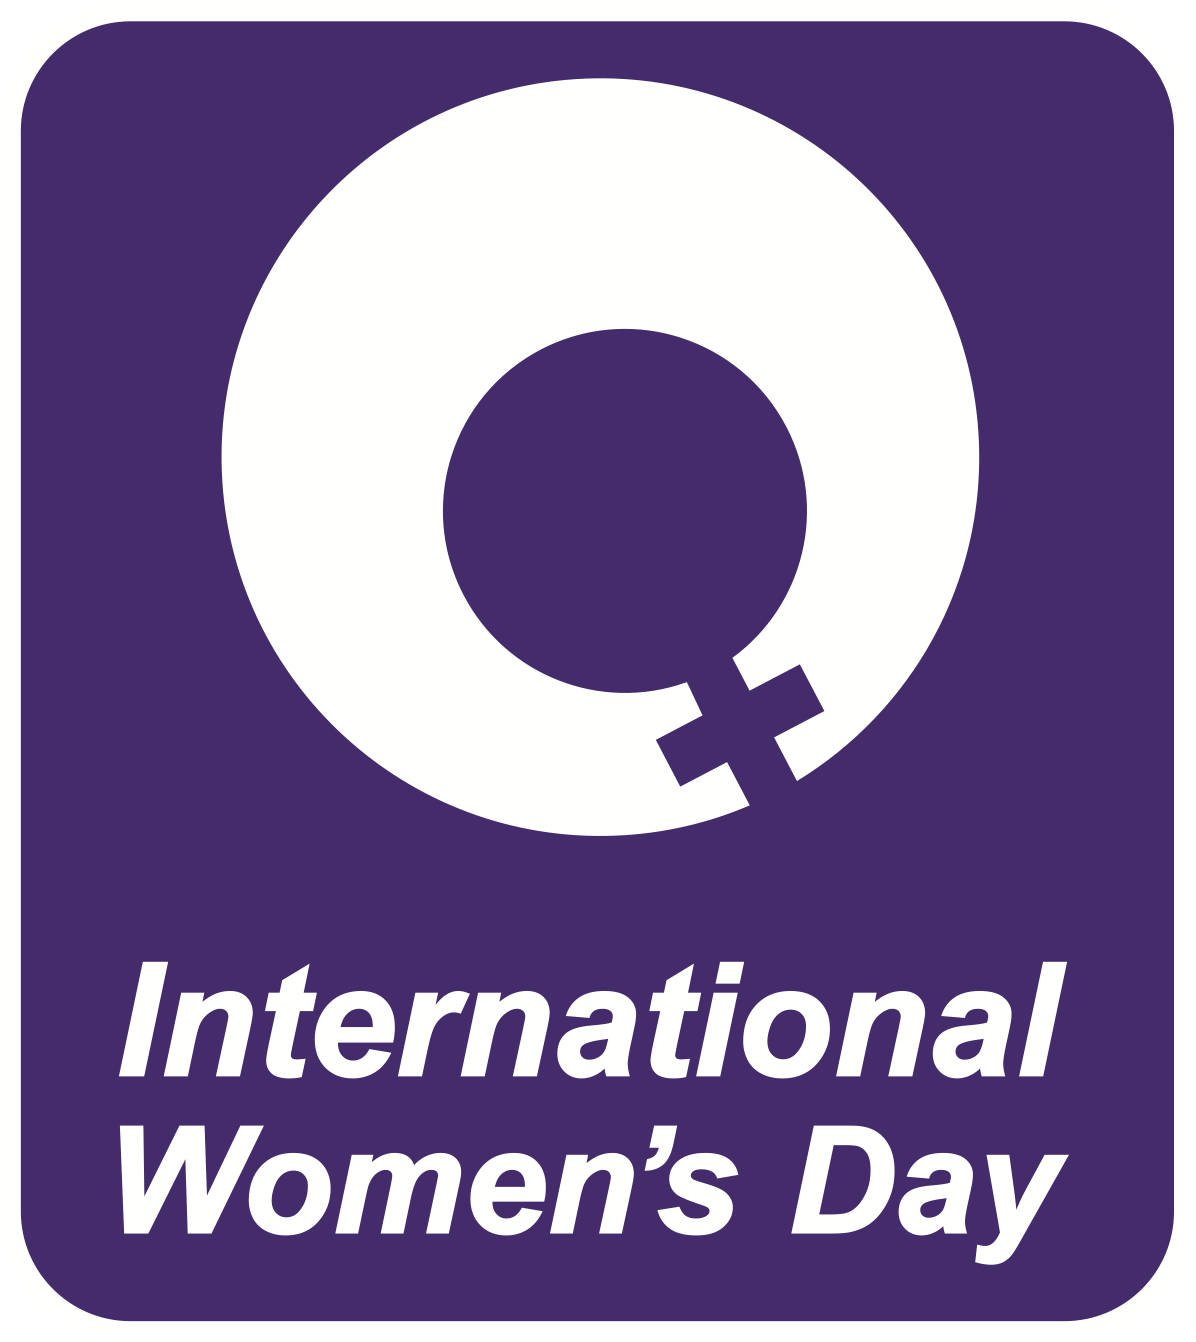 International Women S Day Quotes: International Women's Day, The Future And Present Are